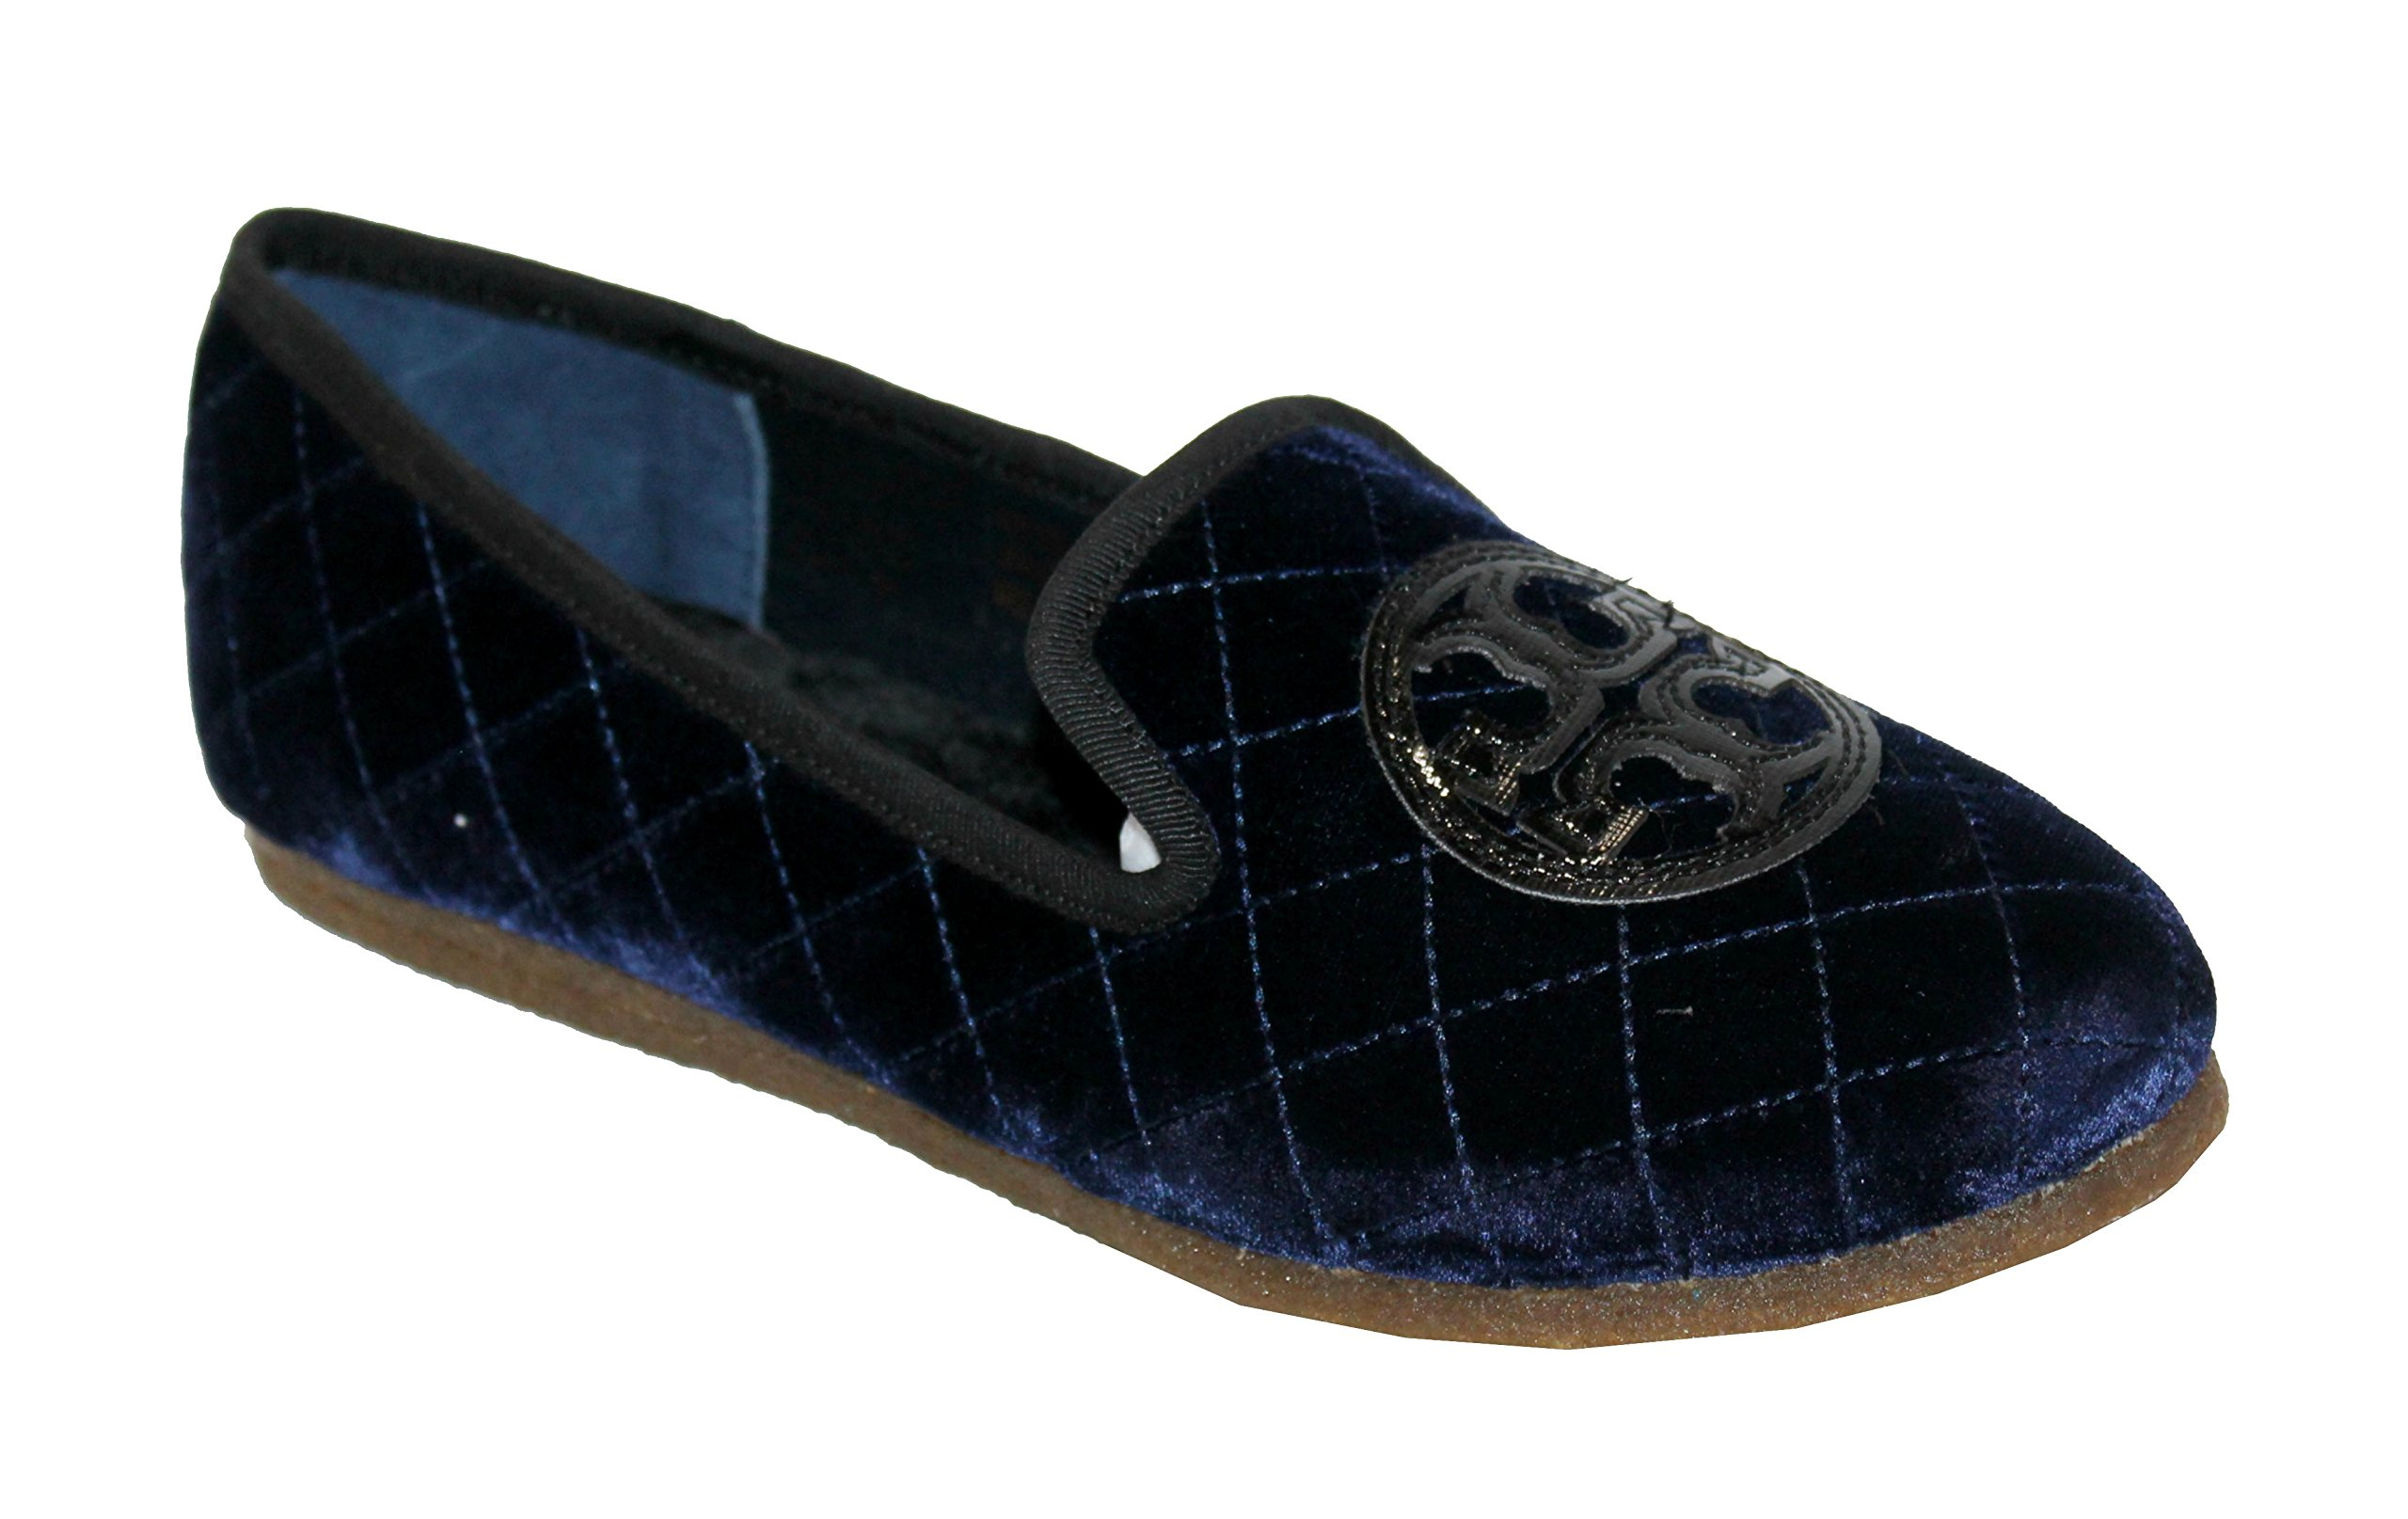 Tory Burch Quilted Billy Slipper Smart Velvet/Leather Shoes Bright Navy (11)